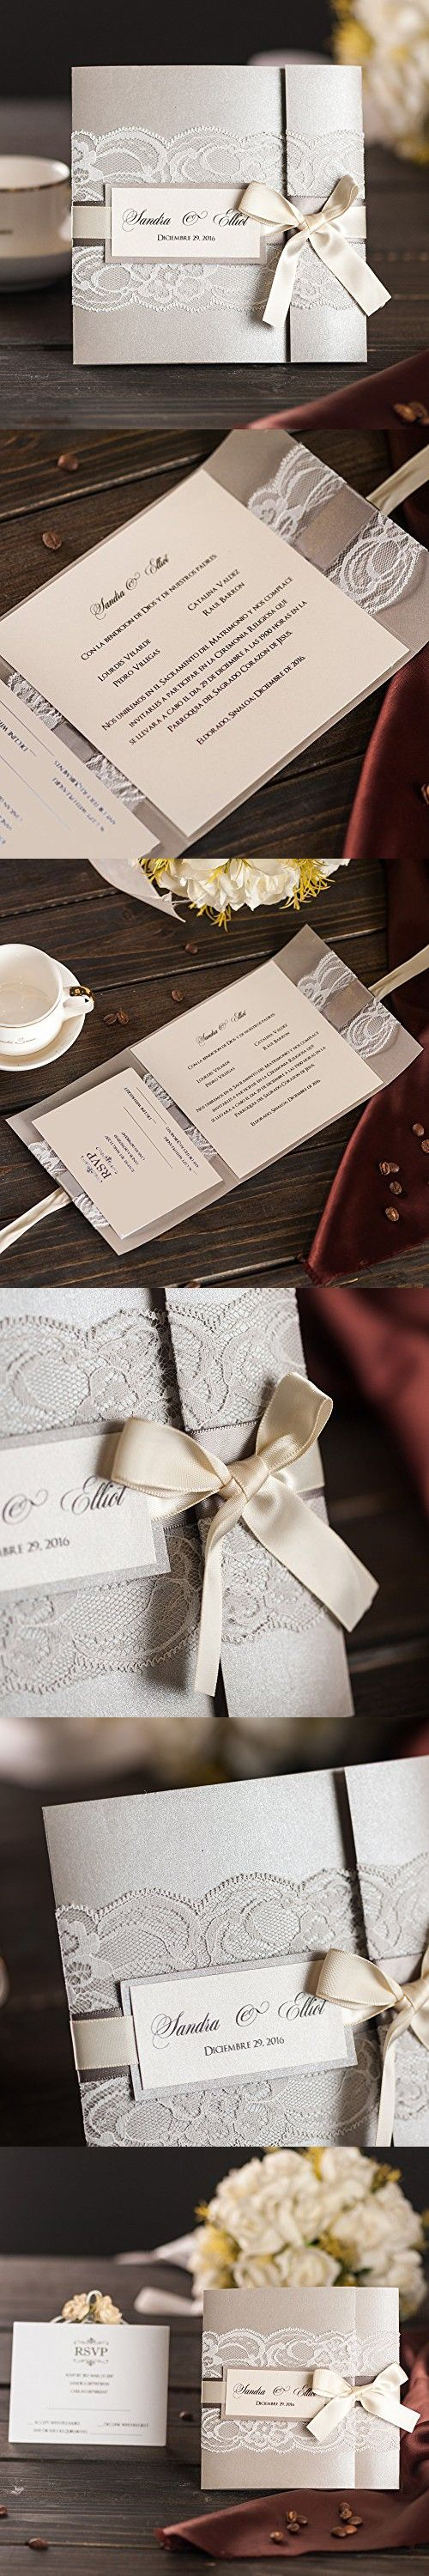 50x Elegant Silver Wedding Invitations Kits With